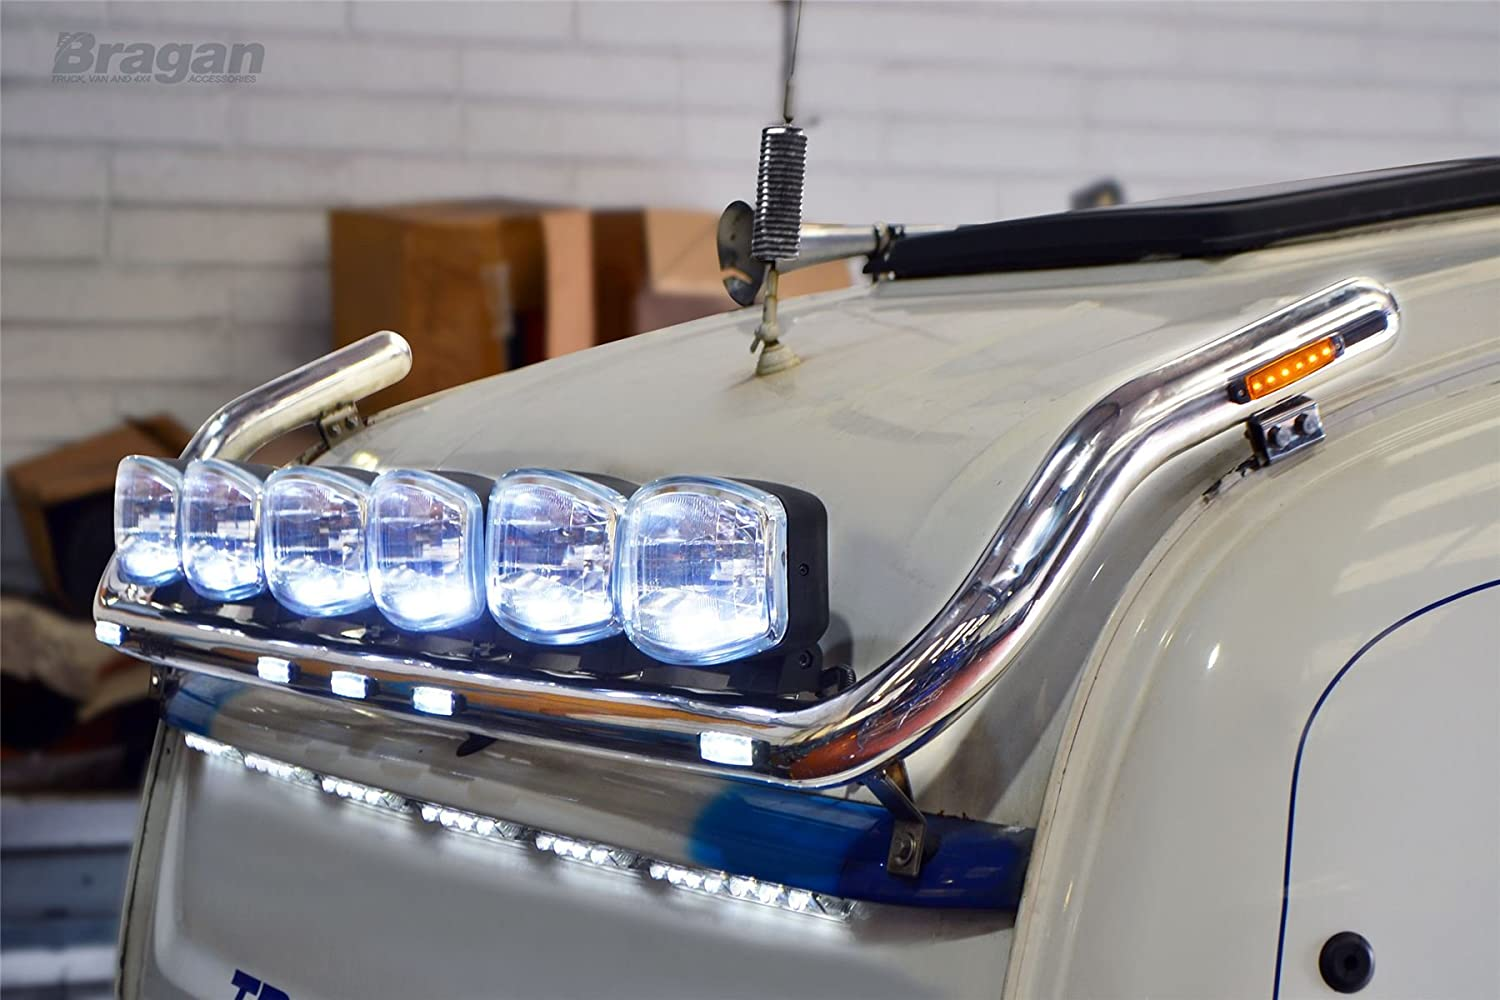 4rpg 6 series scania highline cab roof light bar led x7 4rpg 6 series scania highline cab roof light bar led x7 oval spots x6 amazon car motorbike mozeypictures Gallery